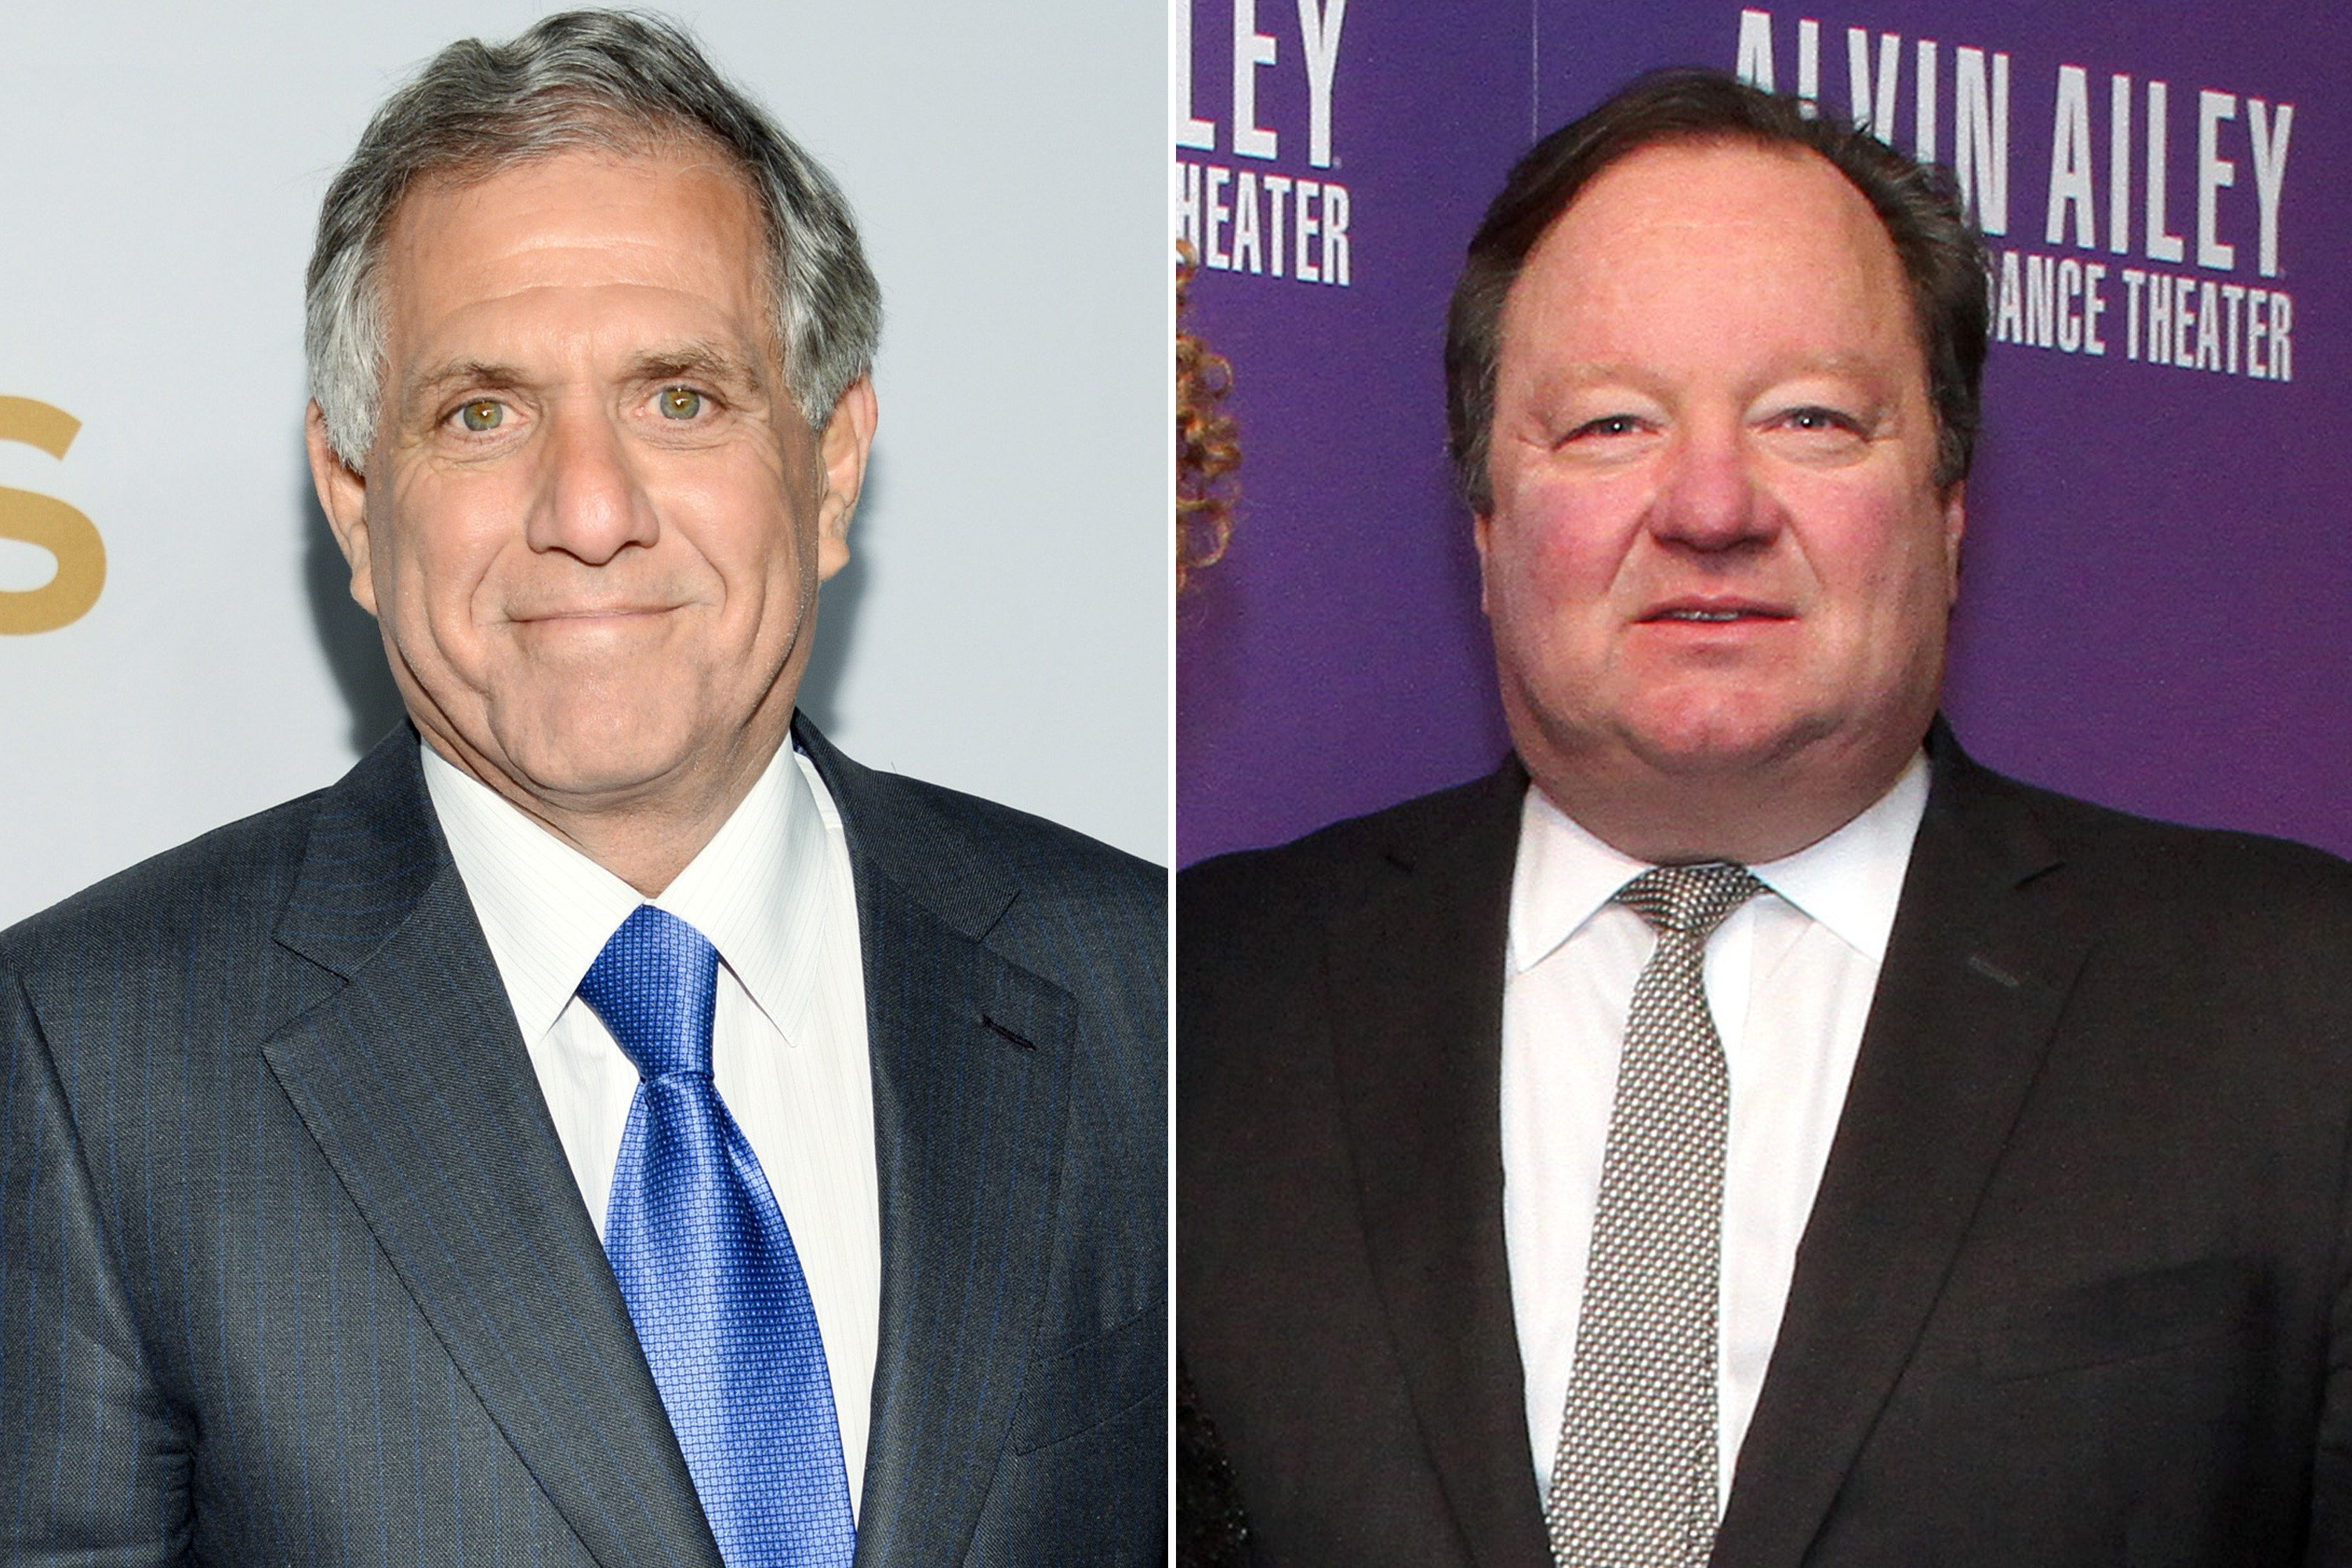 CBS, Viacom stocks rally on rumors of possible merger talks